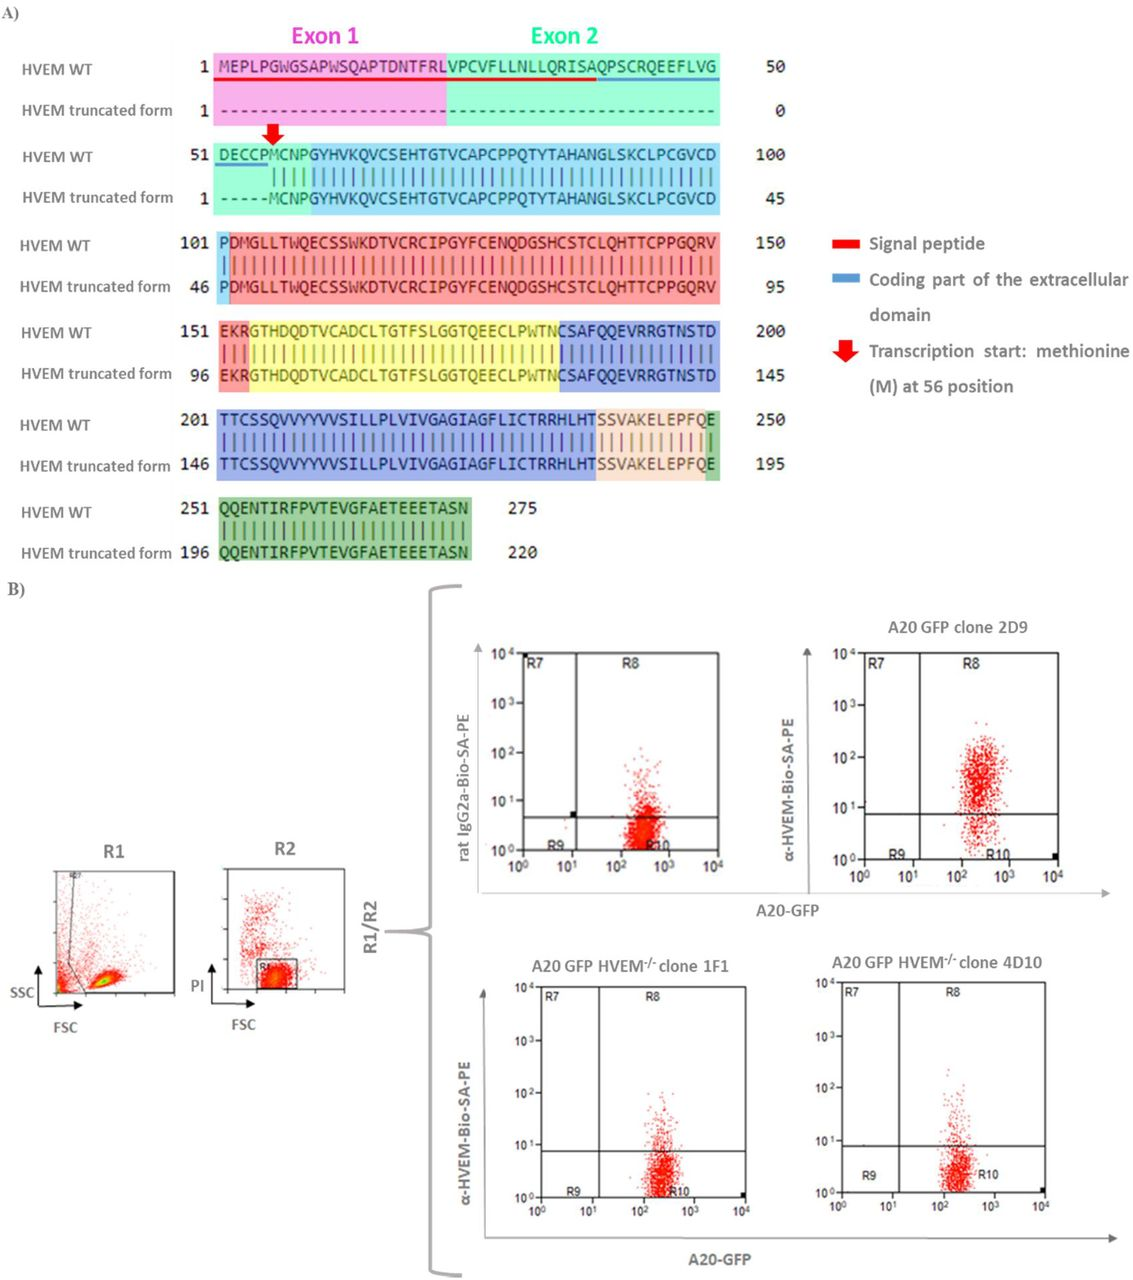 T7 endonuclease I assay shows similar efficiencies of HVEM gene CRISPR-Cas9 modification by different sgRNAs (1, 3, 6 and 13) evaluated. (A) Undigested HVEM band amplified by PCR (cleavage negative control). (B) The resulting digestions of T7/EI assay (red arrows) revealed a similar cleavage pattern to each sgRNA because they presented percentages of HVEM gene modification very similar.